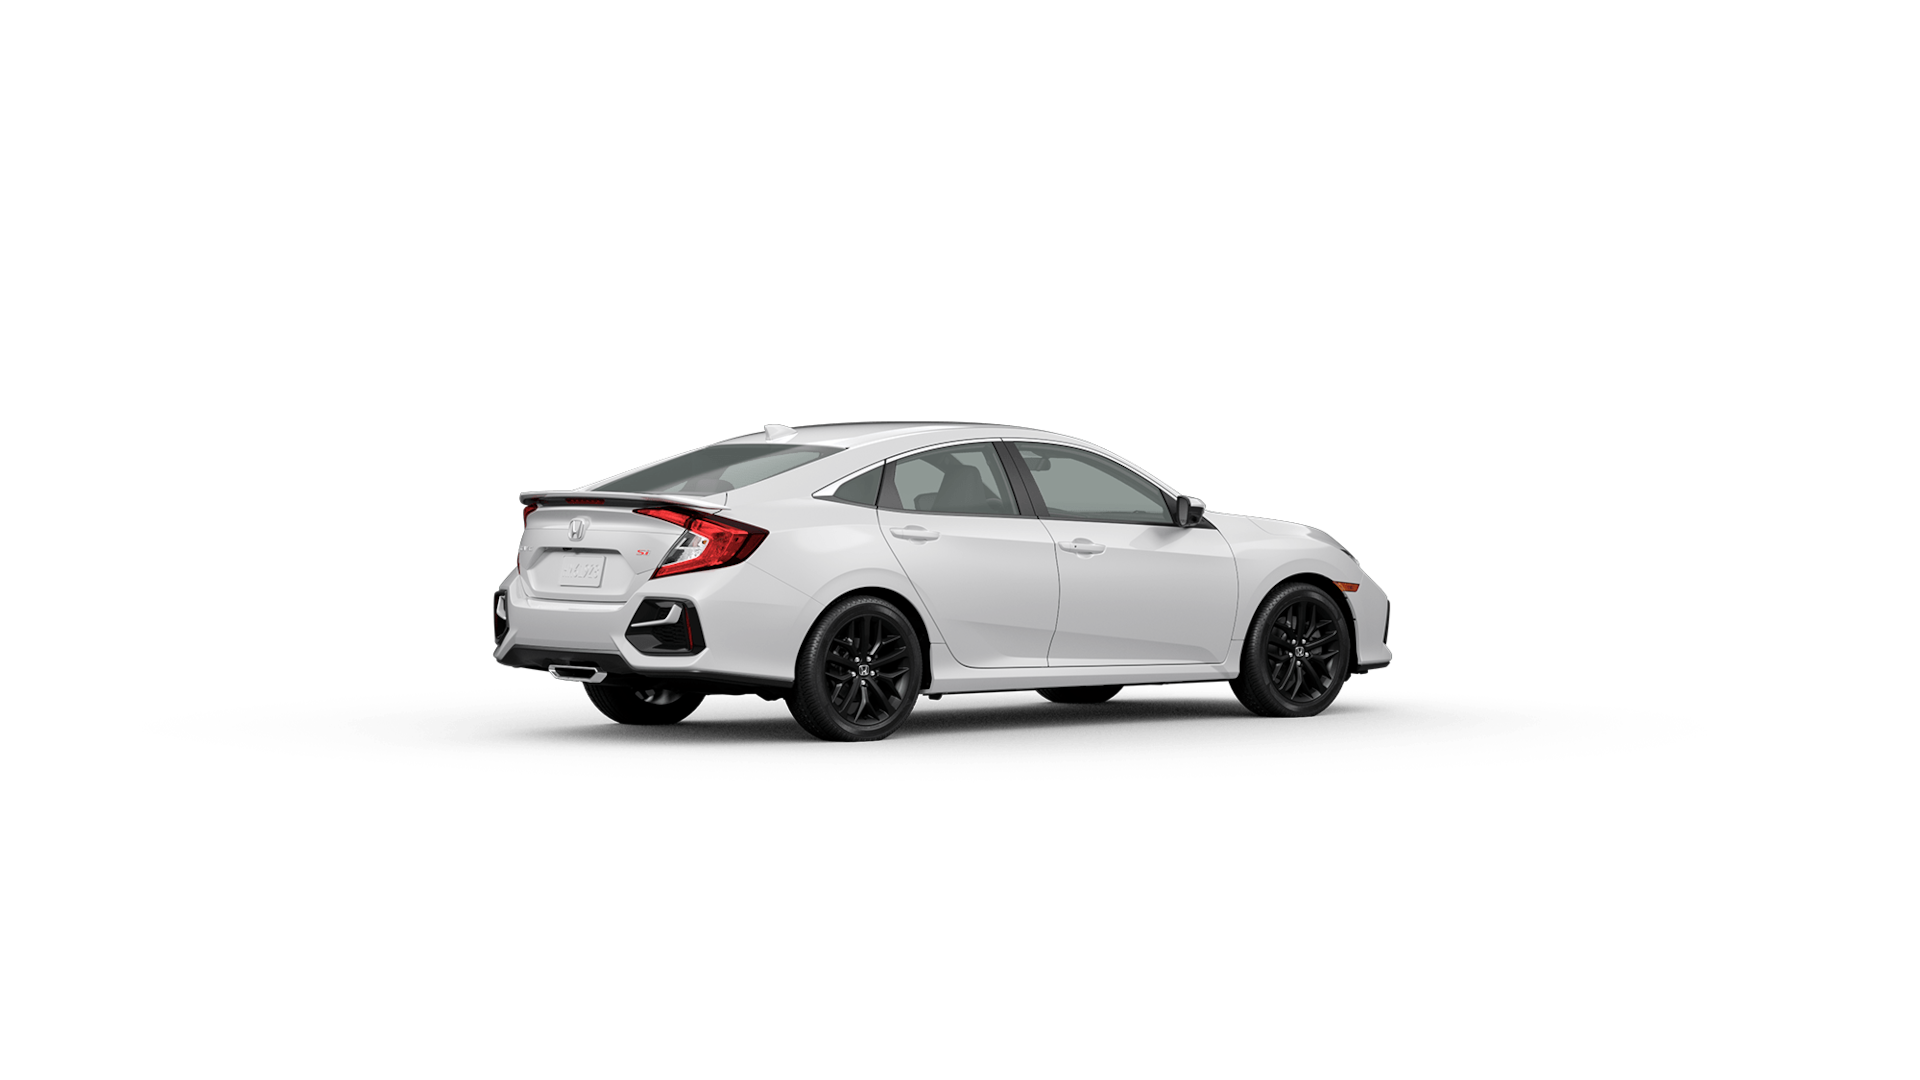 2020 civic si sedan compact sport sedan honda 2020 civic si sedan compact sport sedan honda